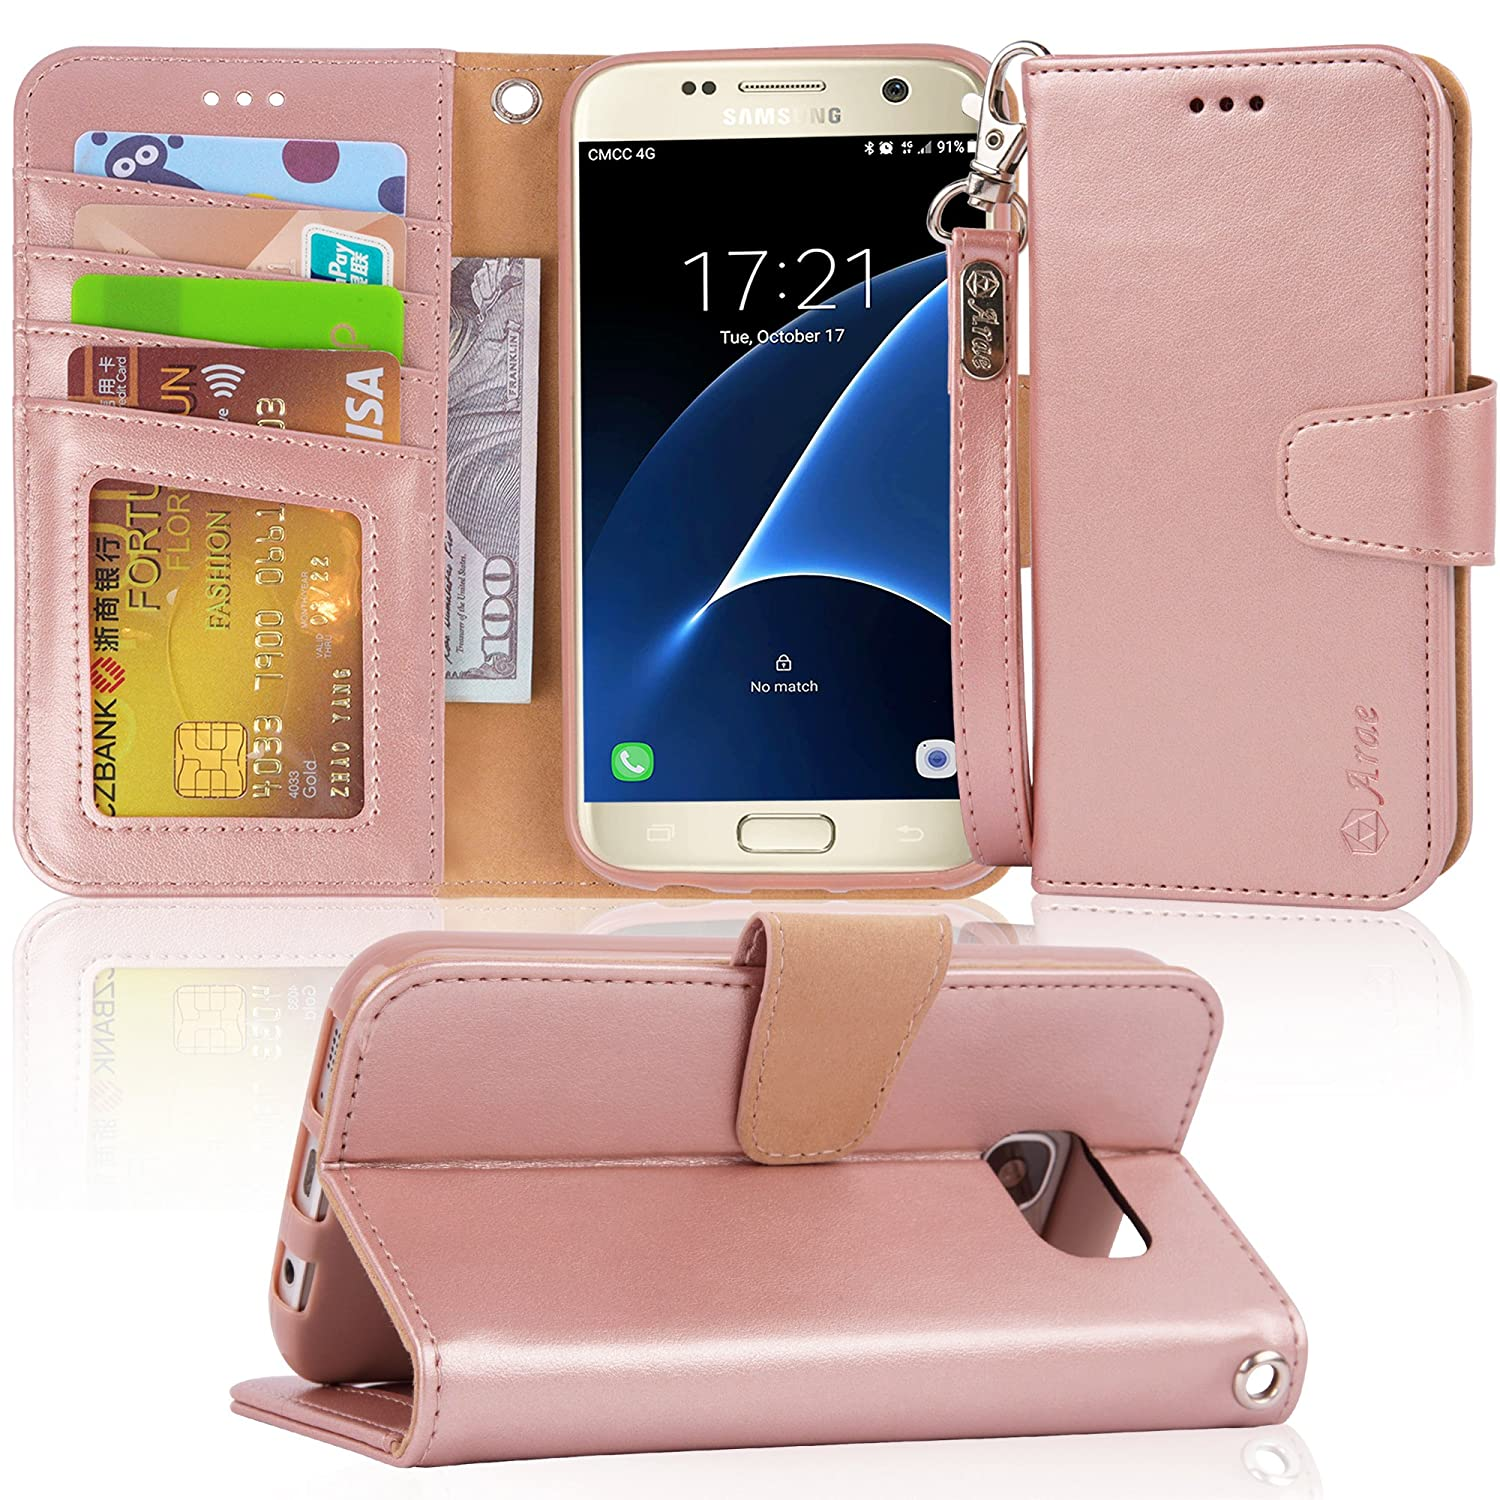 Galaxy s7 Case, Arae [Wrist Strap] Flip Folio [Kickstand Feature] PU Leather Wallet case with ID&Credit Card Pockets for Samsung Galaxy S7 (Rosegold)